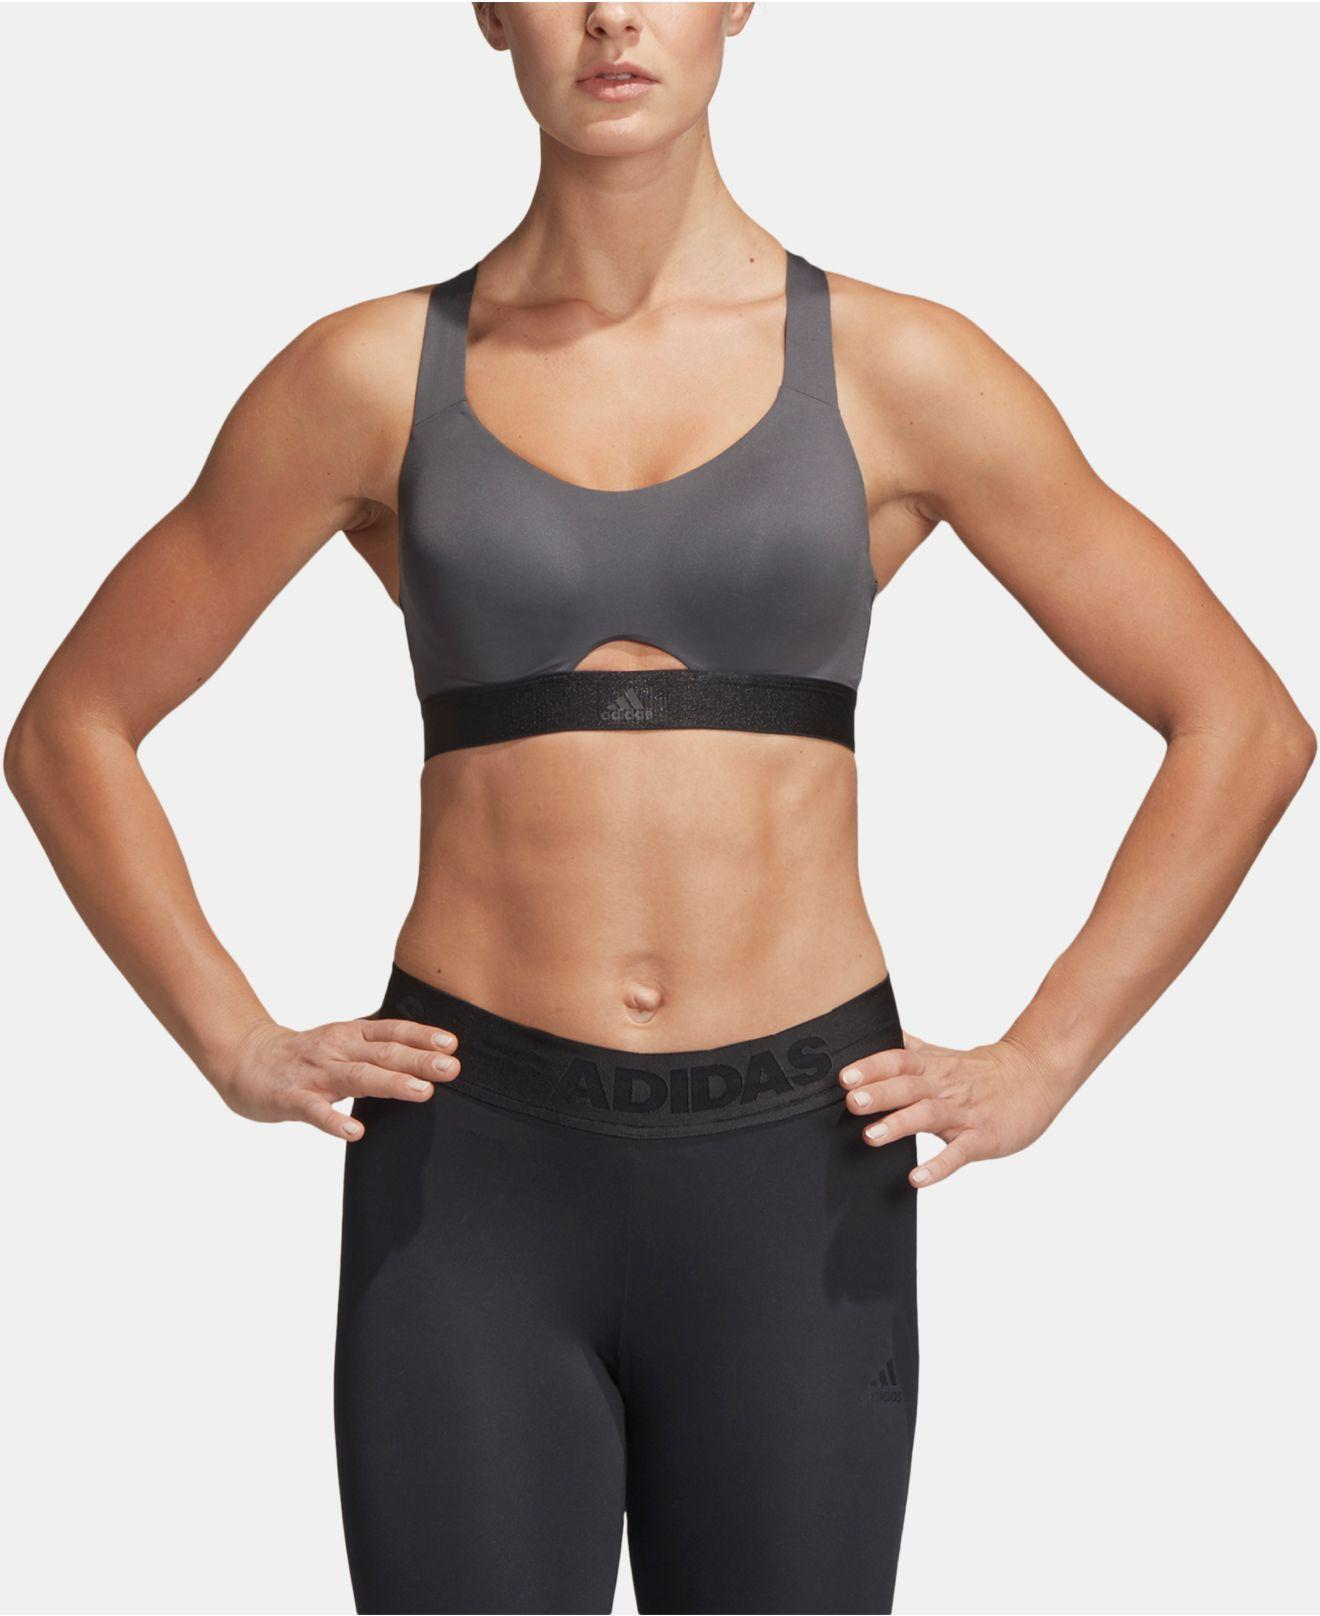 47d8e12396 Lyst - adidas Stronger Cross-back High-support Sports Bra in Gray